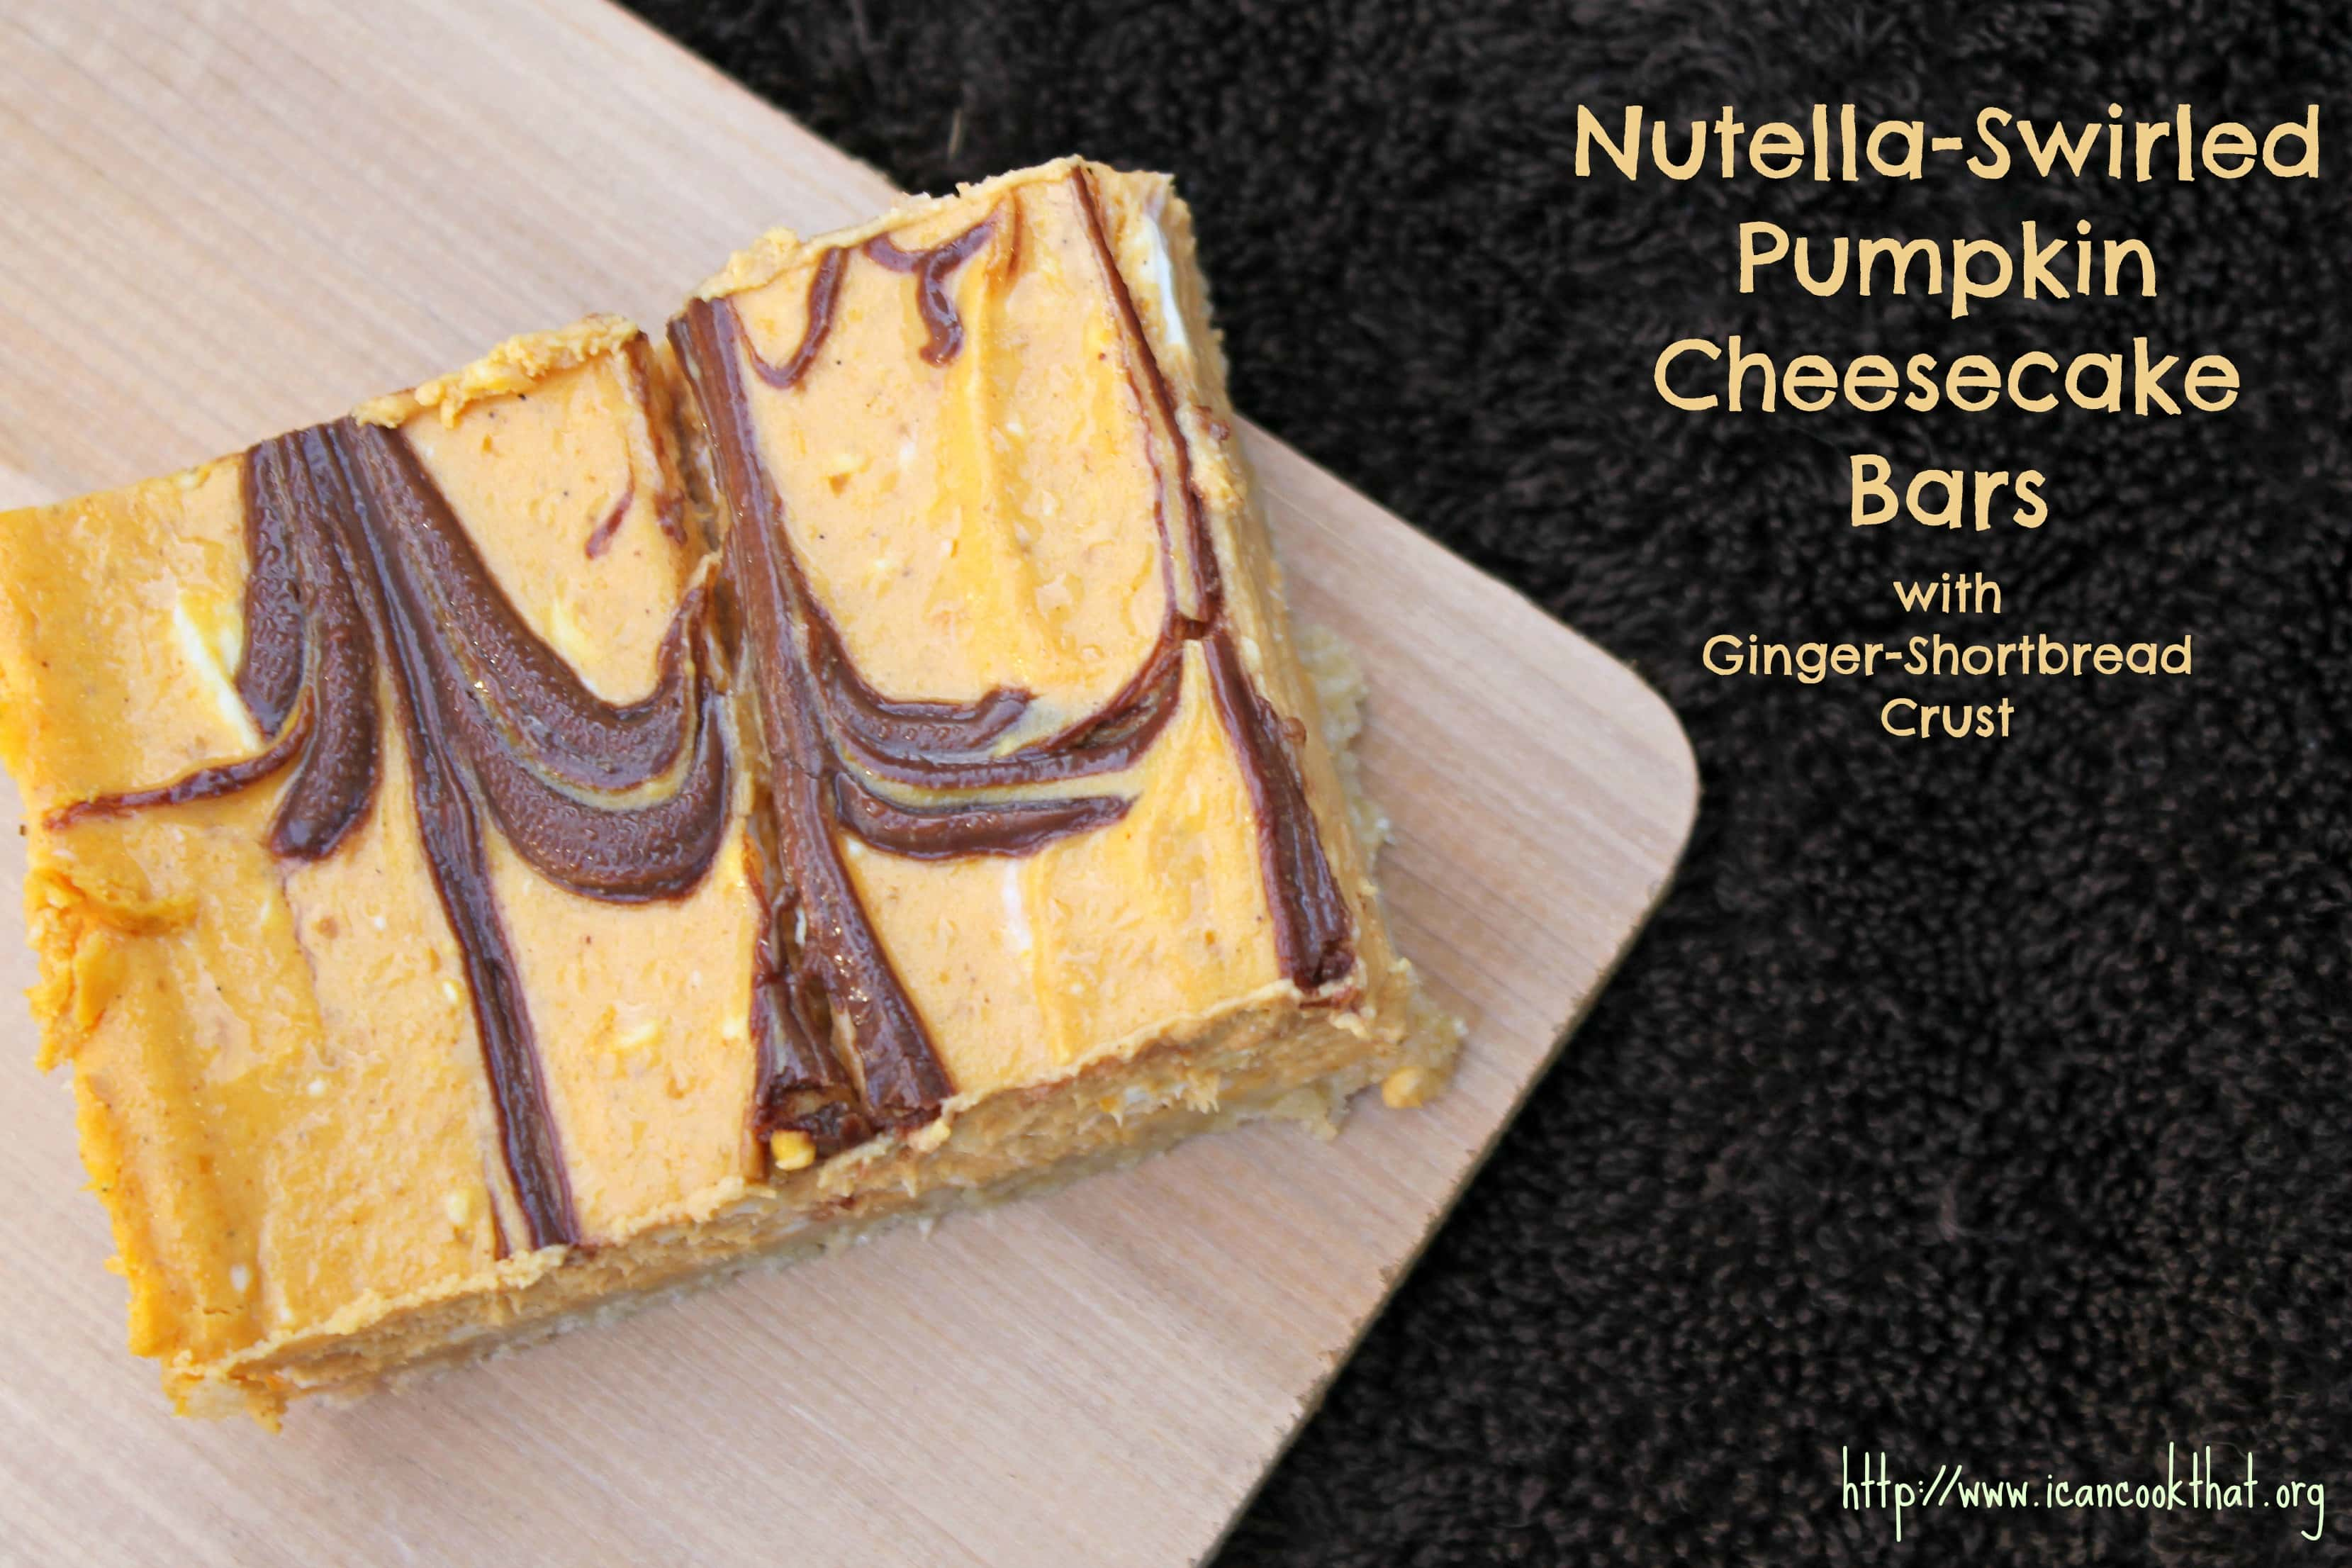 Nutella Swirled Pumpkin Cheesecake Bars